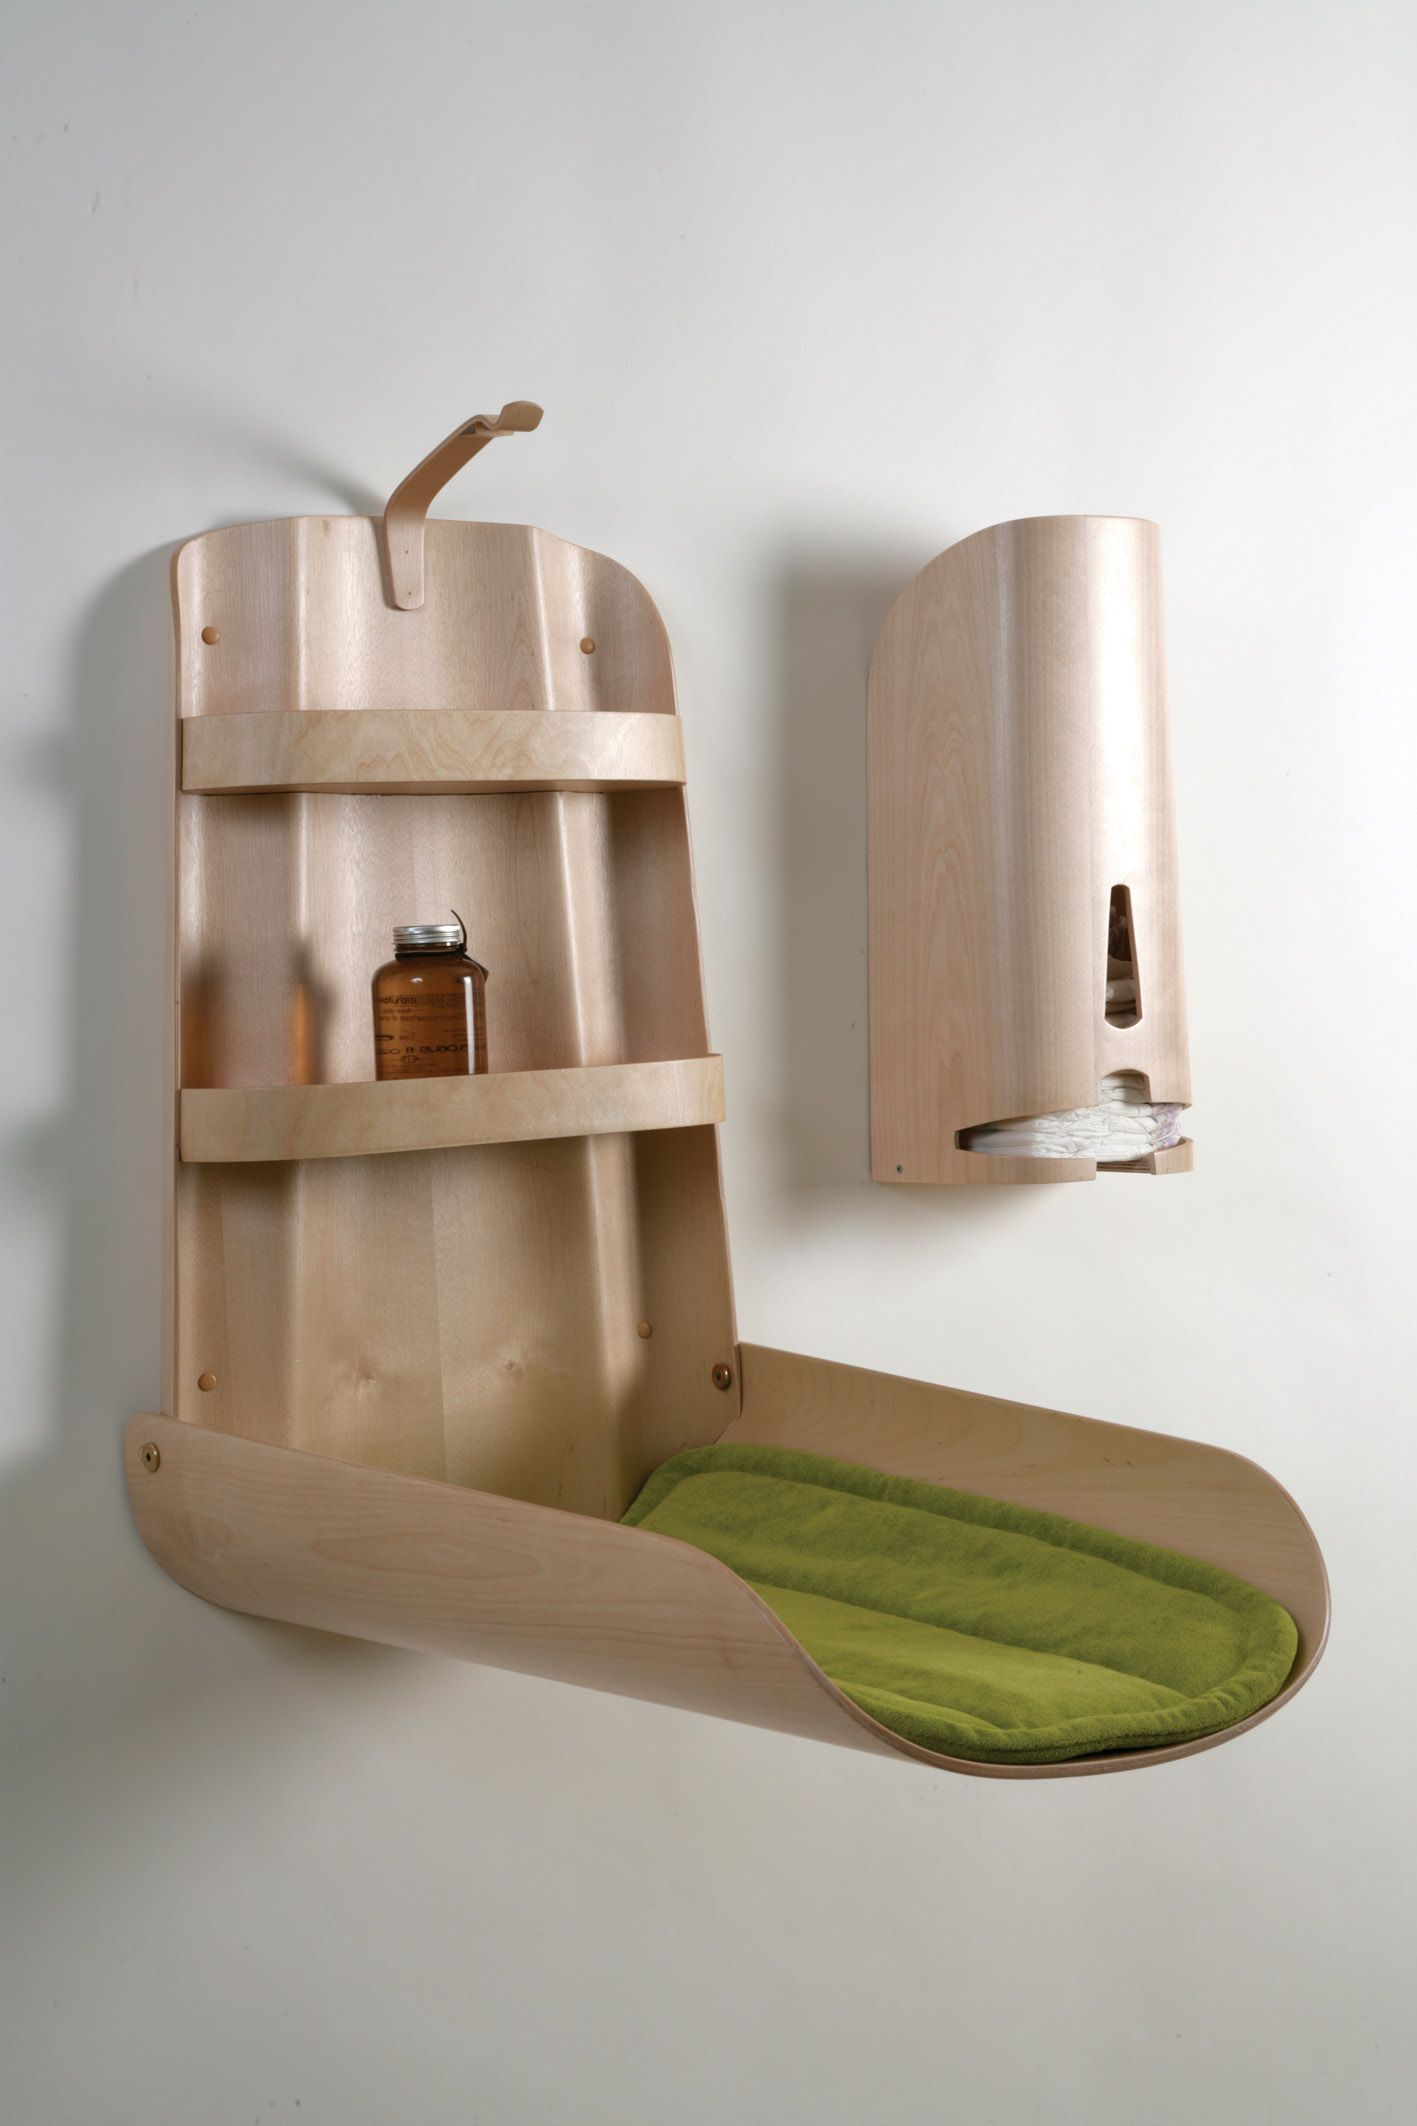 such a great idea for small spaces wall mounted changing table  - such a great idea for small spaces wall mounted changing table wouldbuy if money wasn't a consideration ) swedish baby furniture